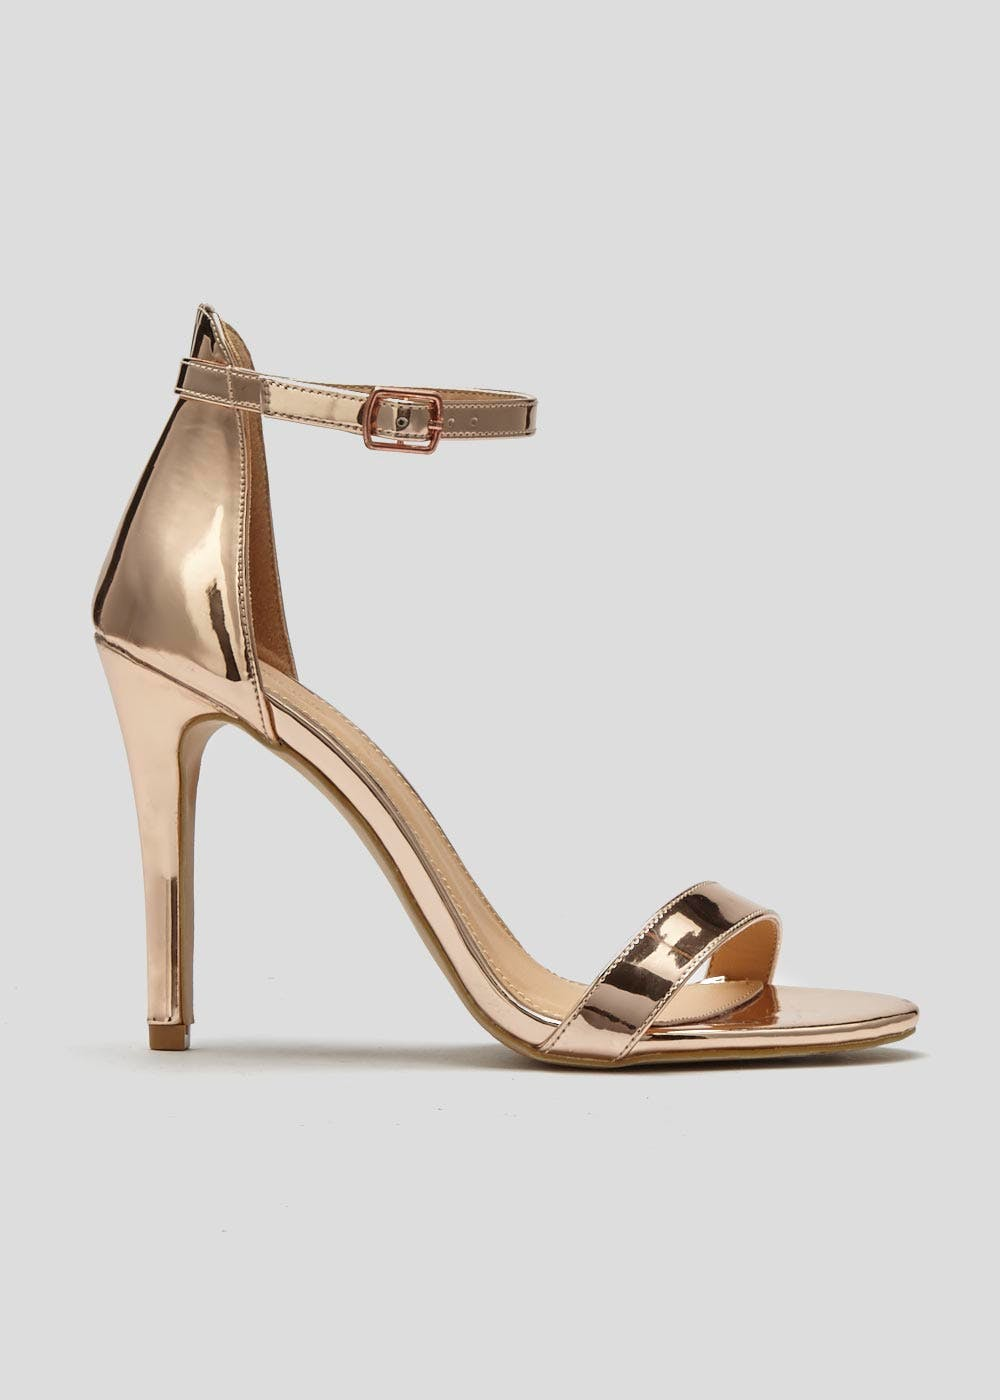 a79cc491c97 Barely There Strappy Sandals